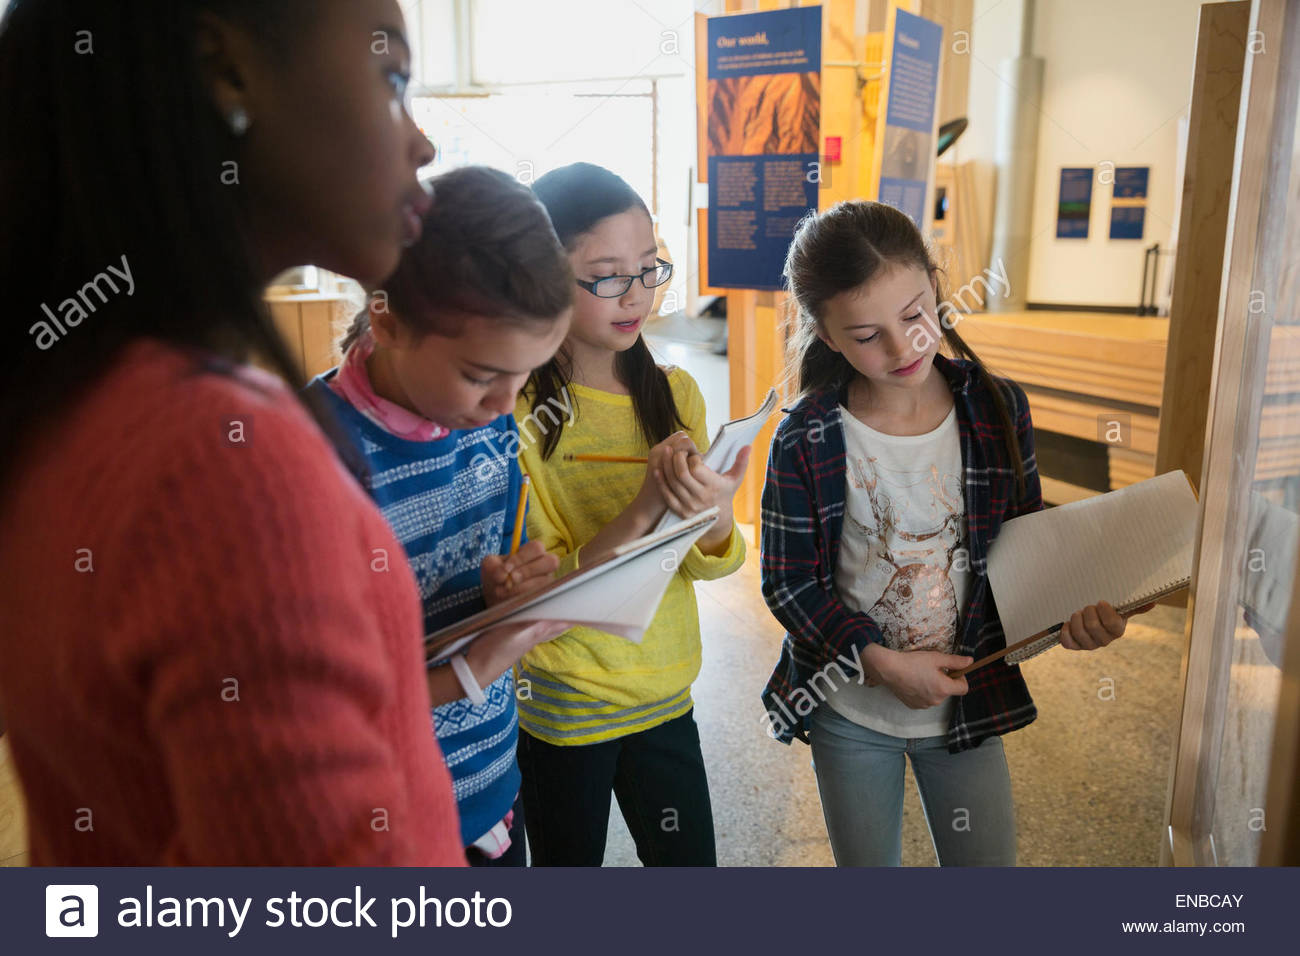 Students taking notes geology exhibit at science center - Stock Image